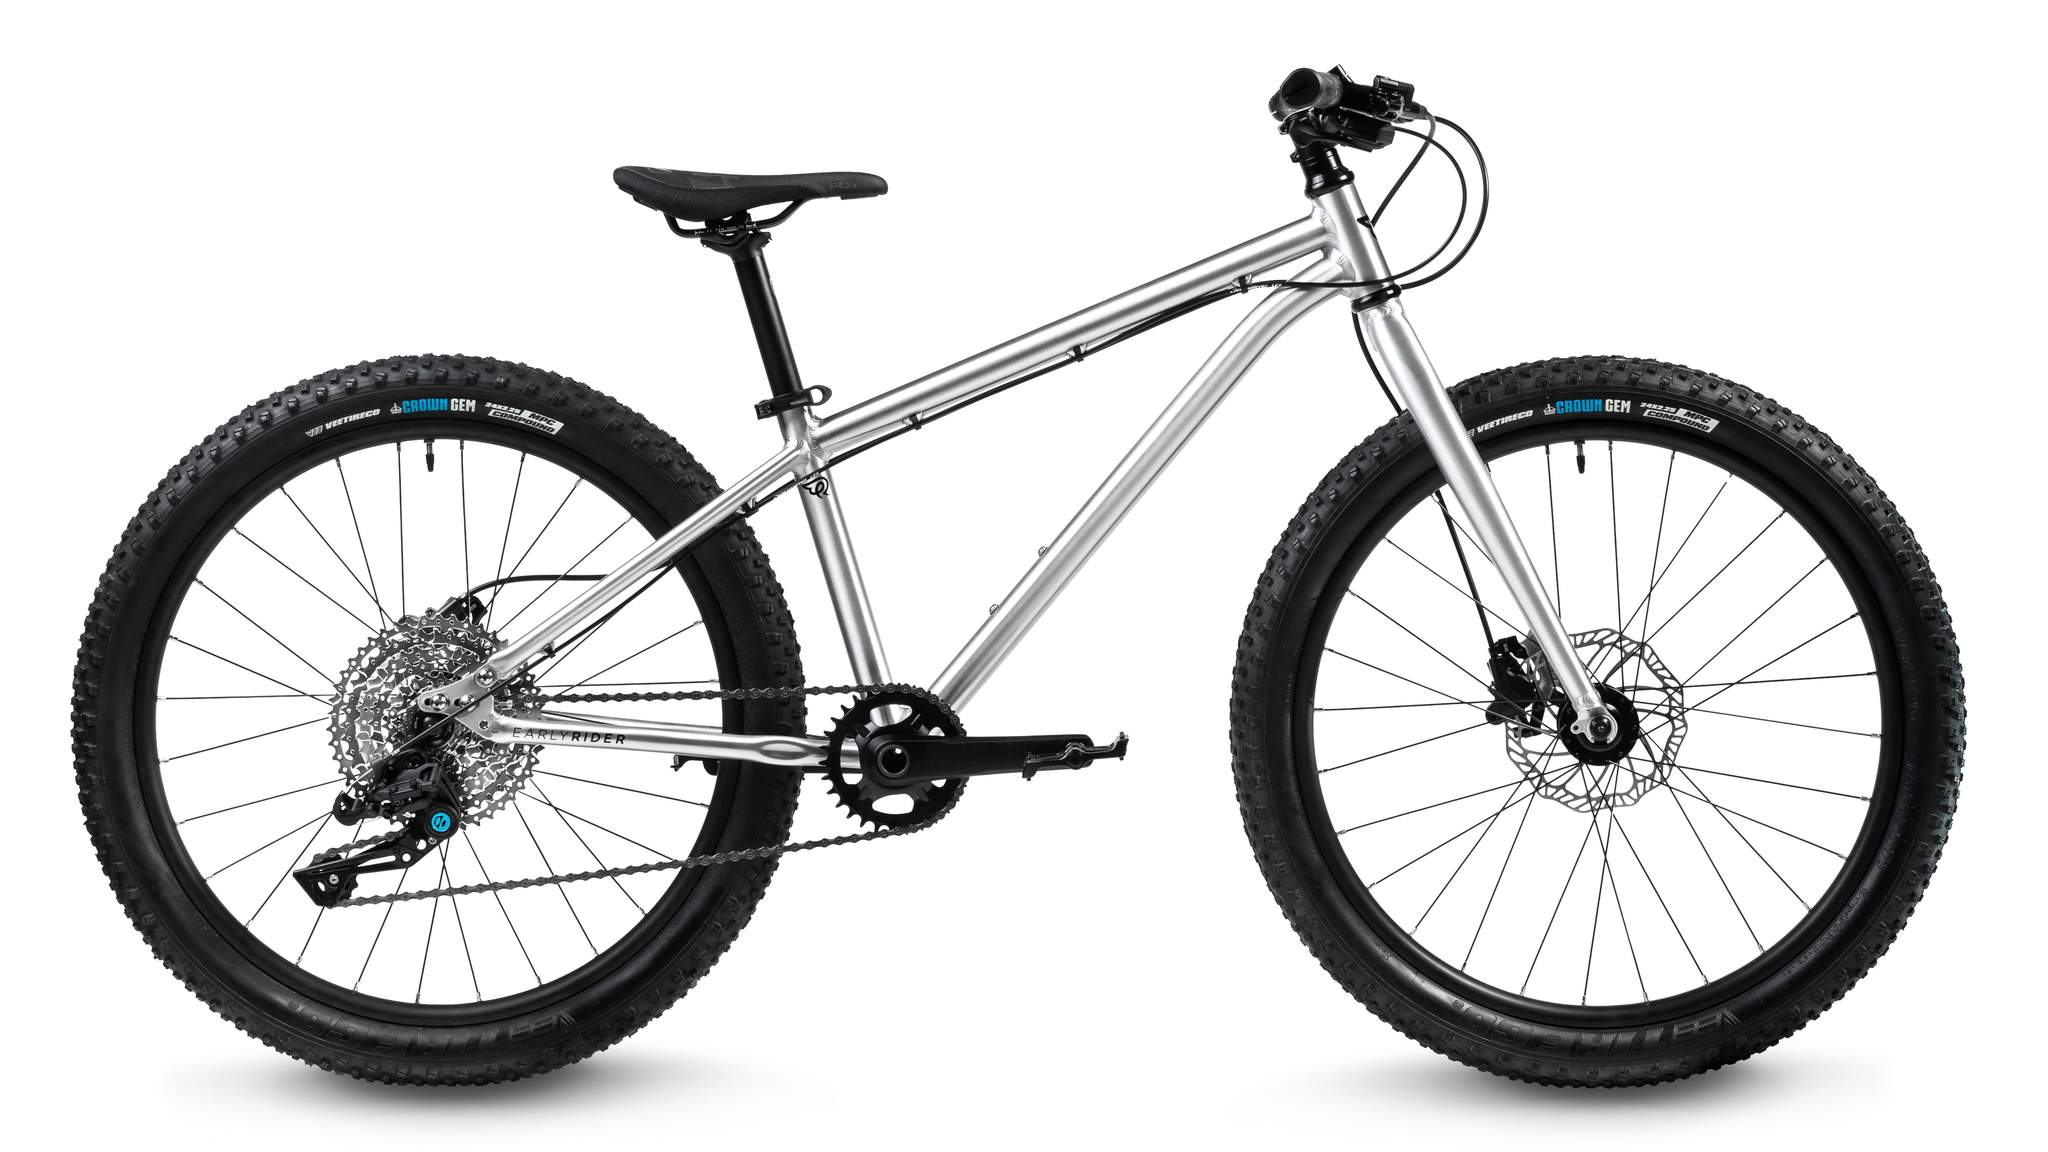 "dětské kolo Early Rider Seeker Adventure 24"" 2021 brushed aluminum"